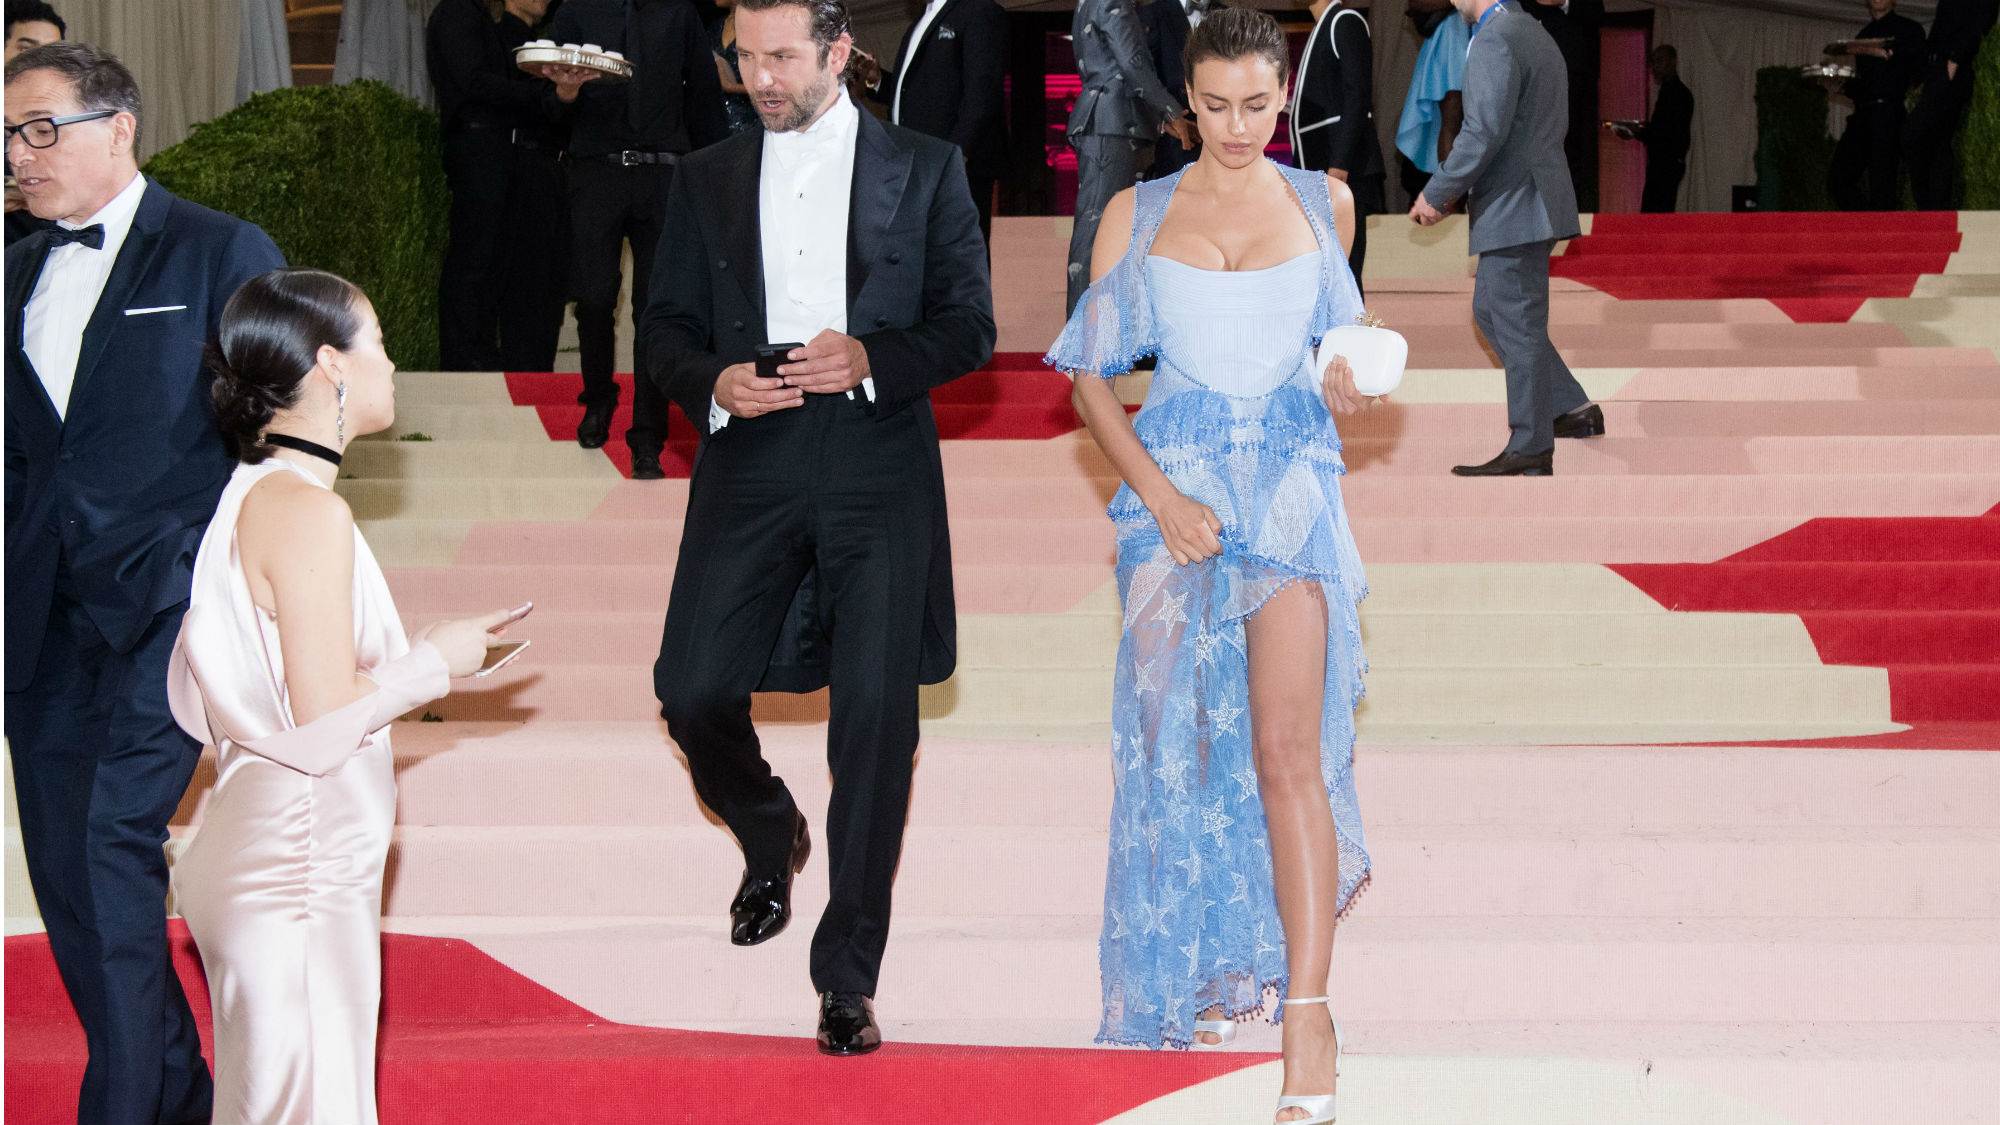 25a37d2826f7 Irina Shayk on the red carpet with Bradley Cooper